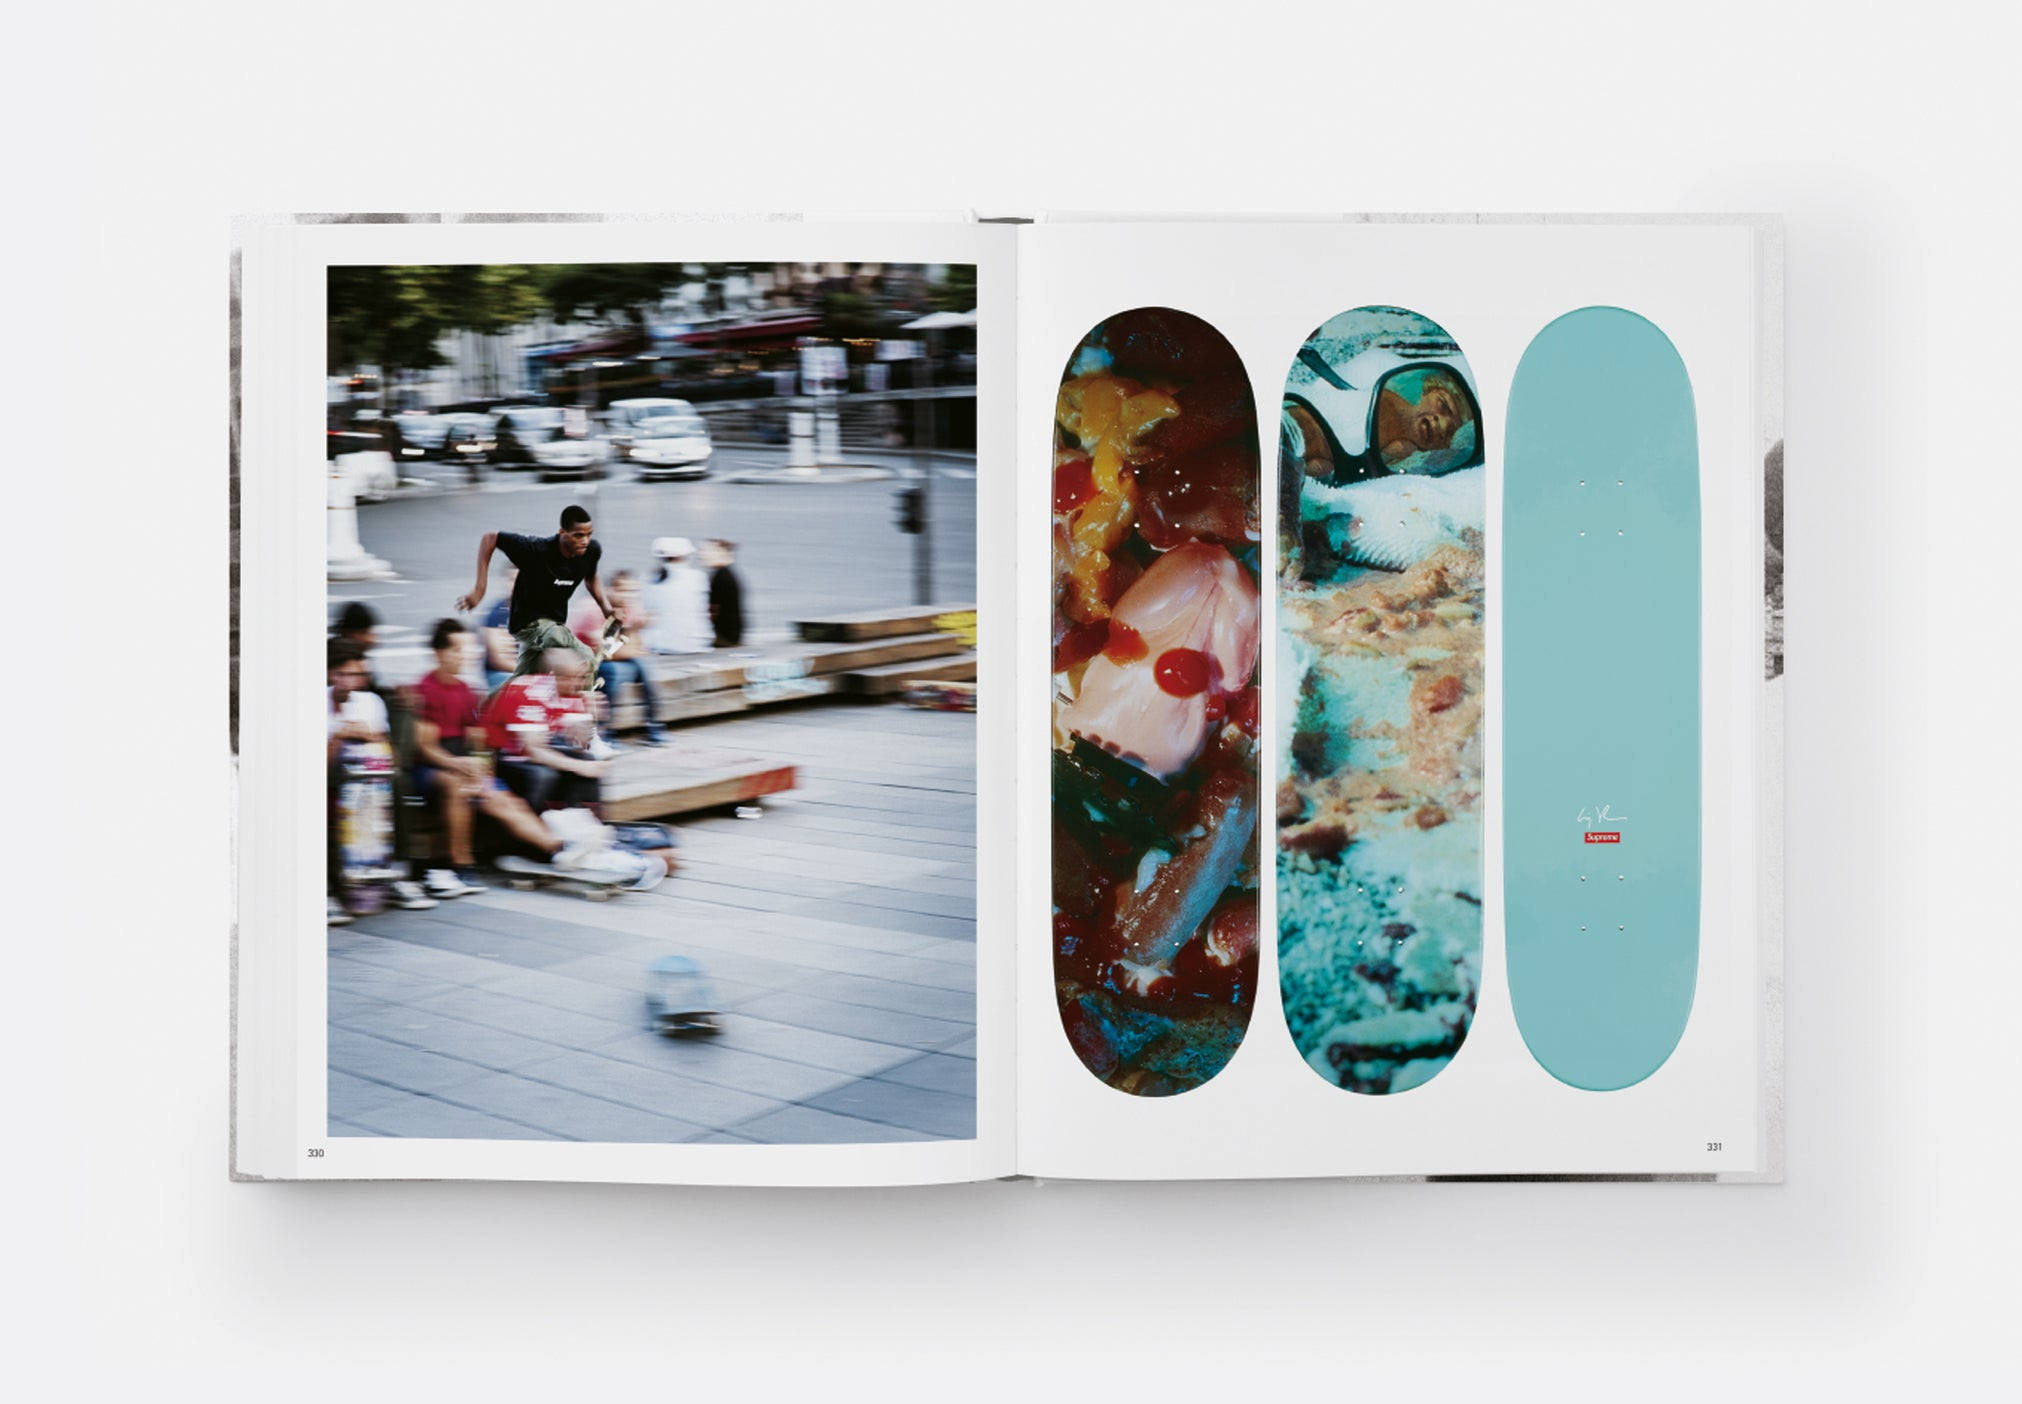 SUPREME VOL 2 BOOK